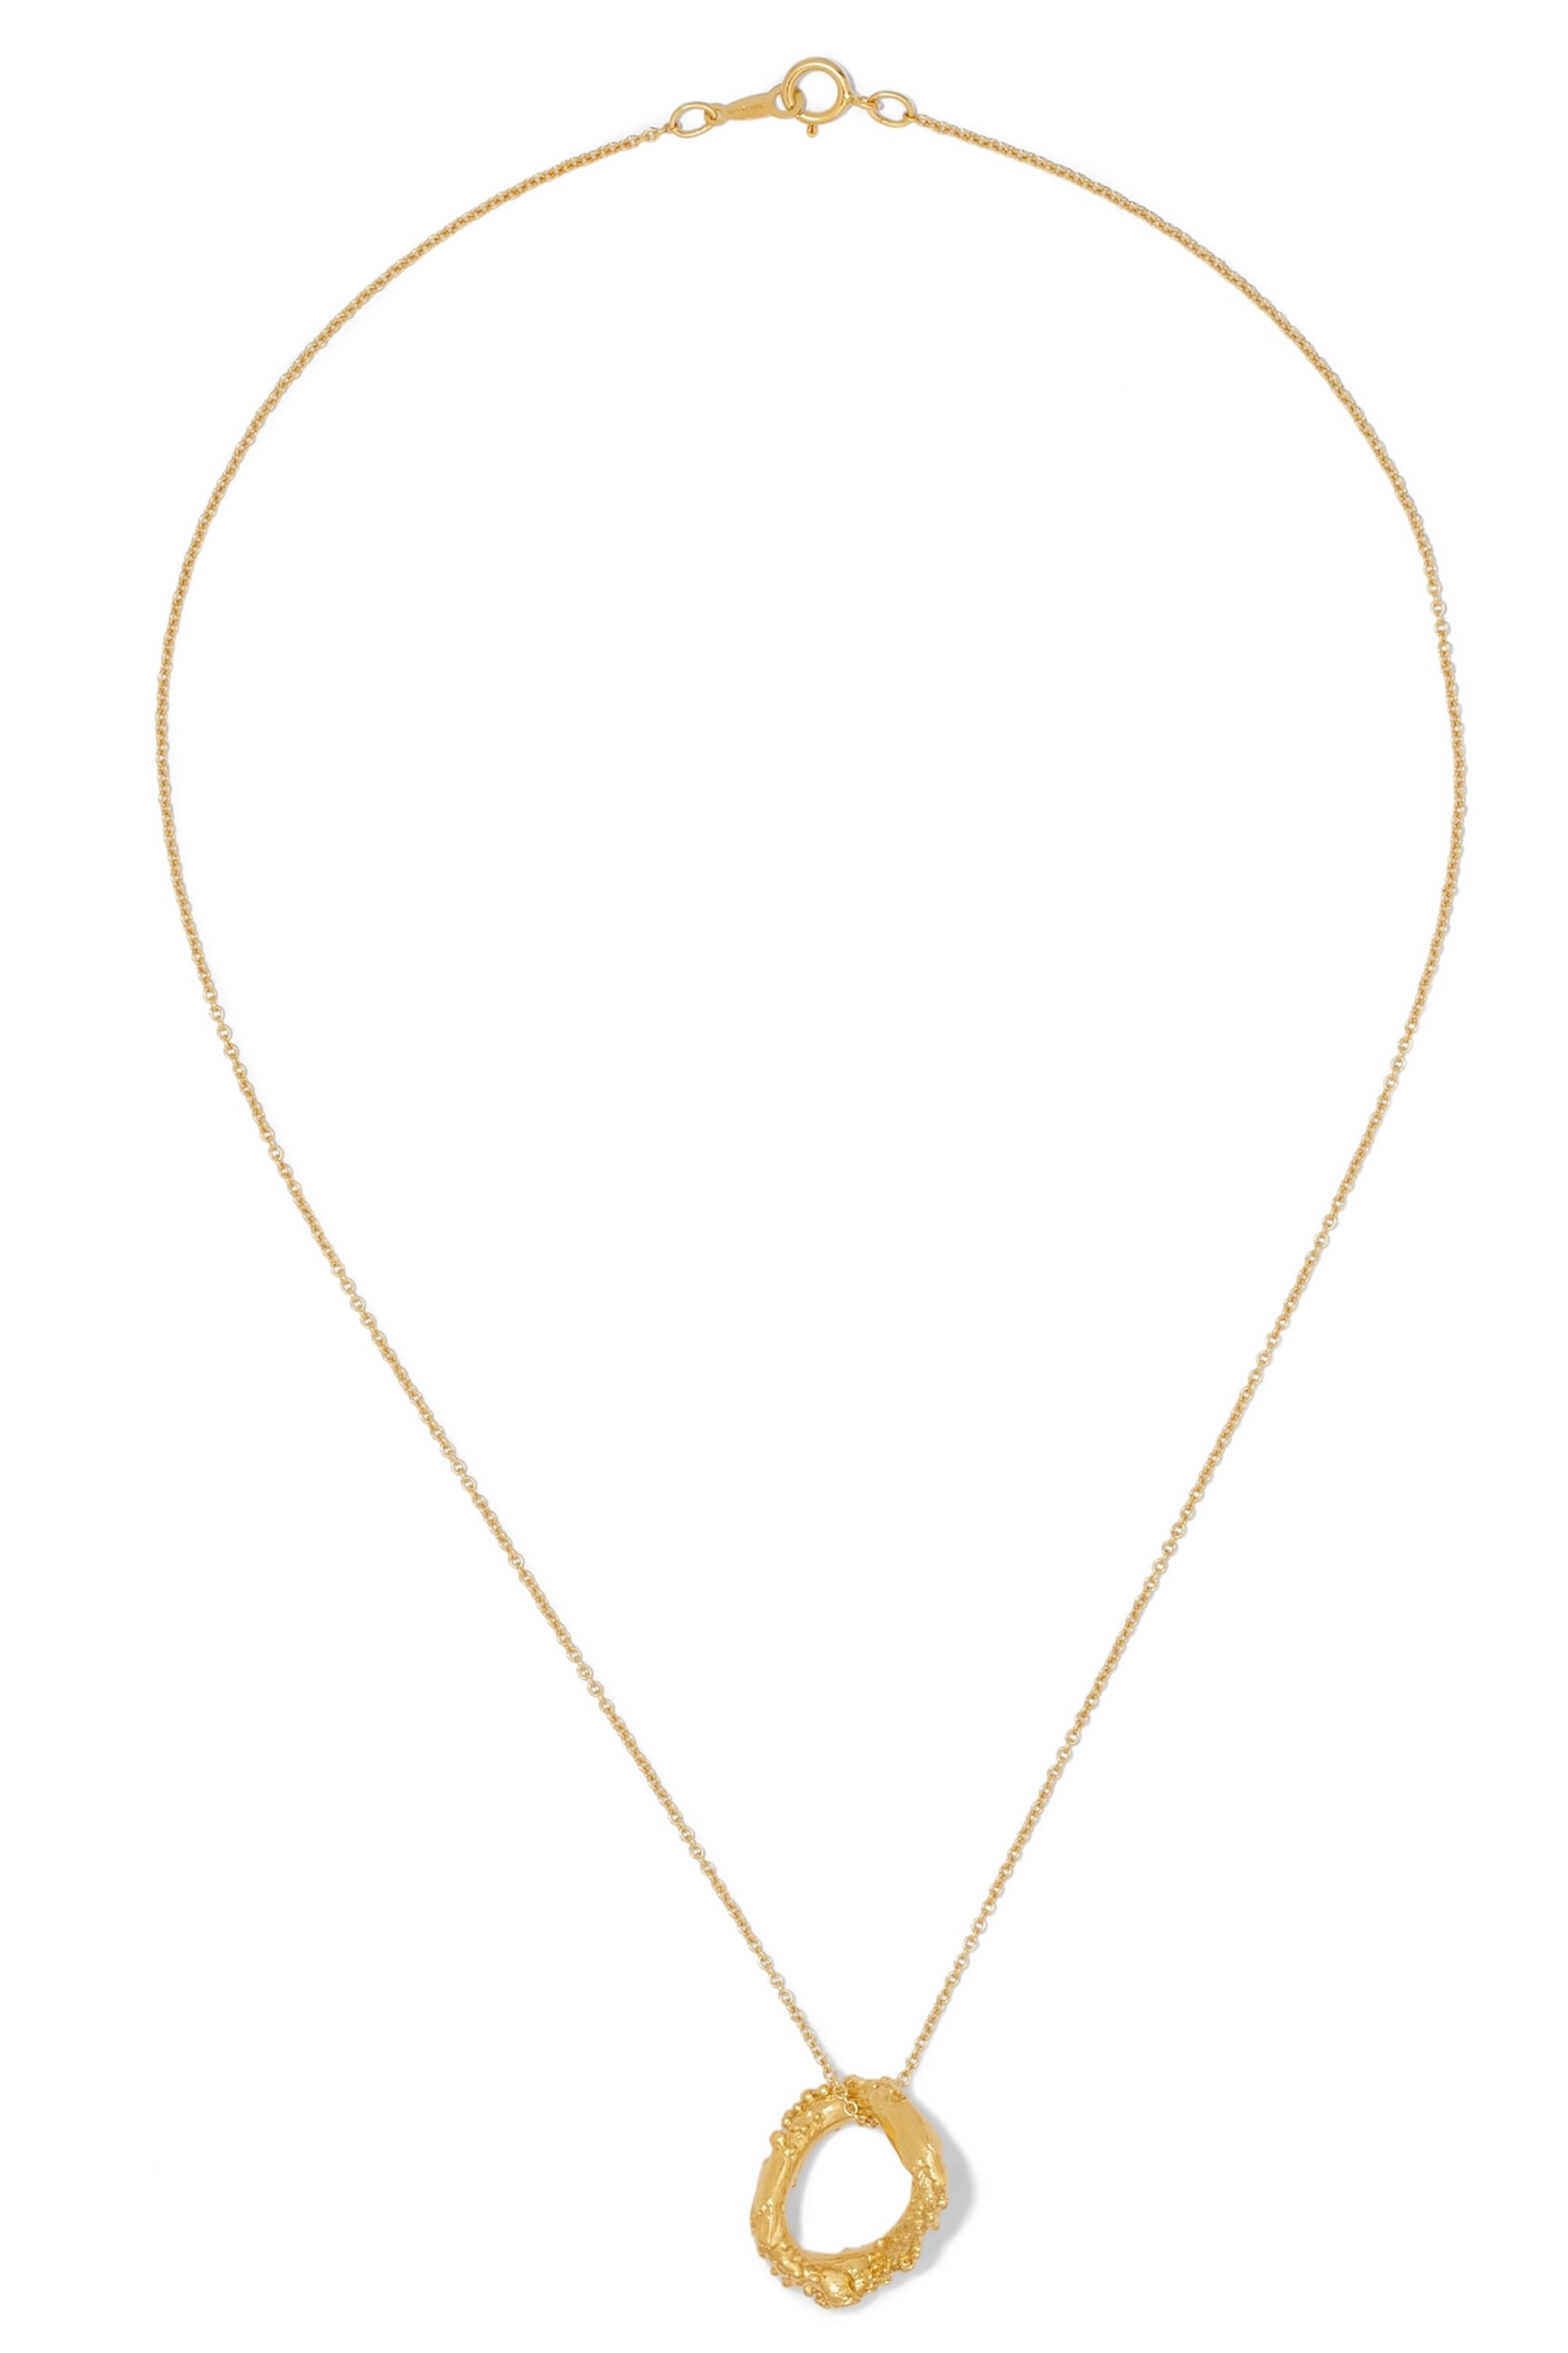 Alighieri The Night Shift gold-plated necklace